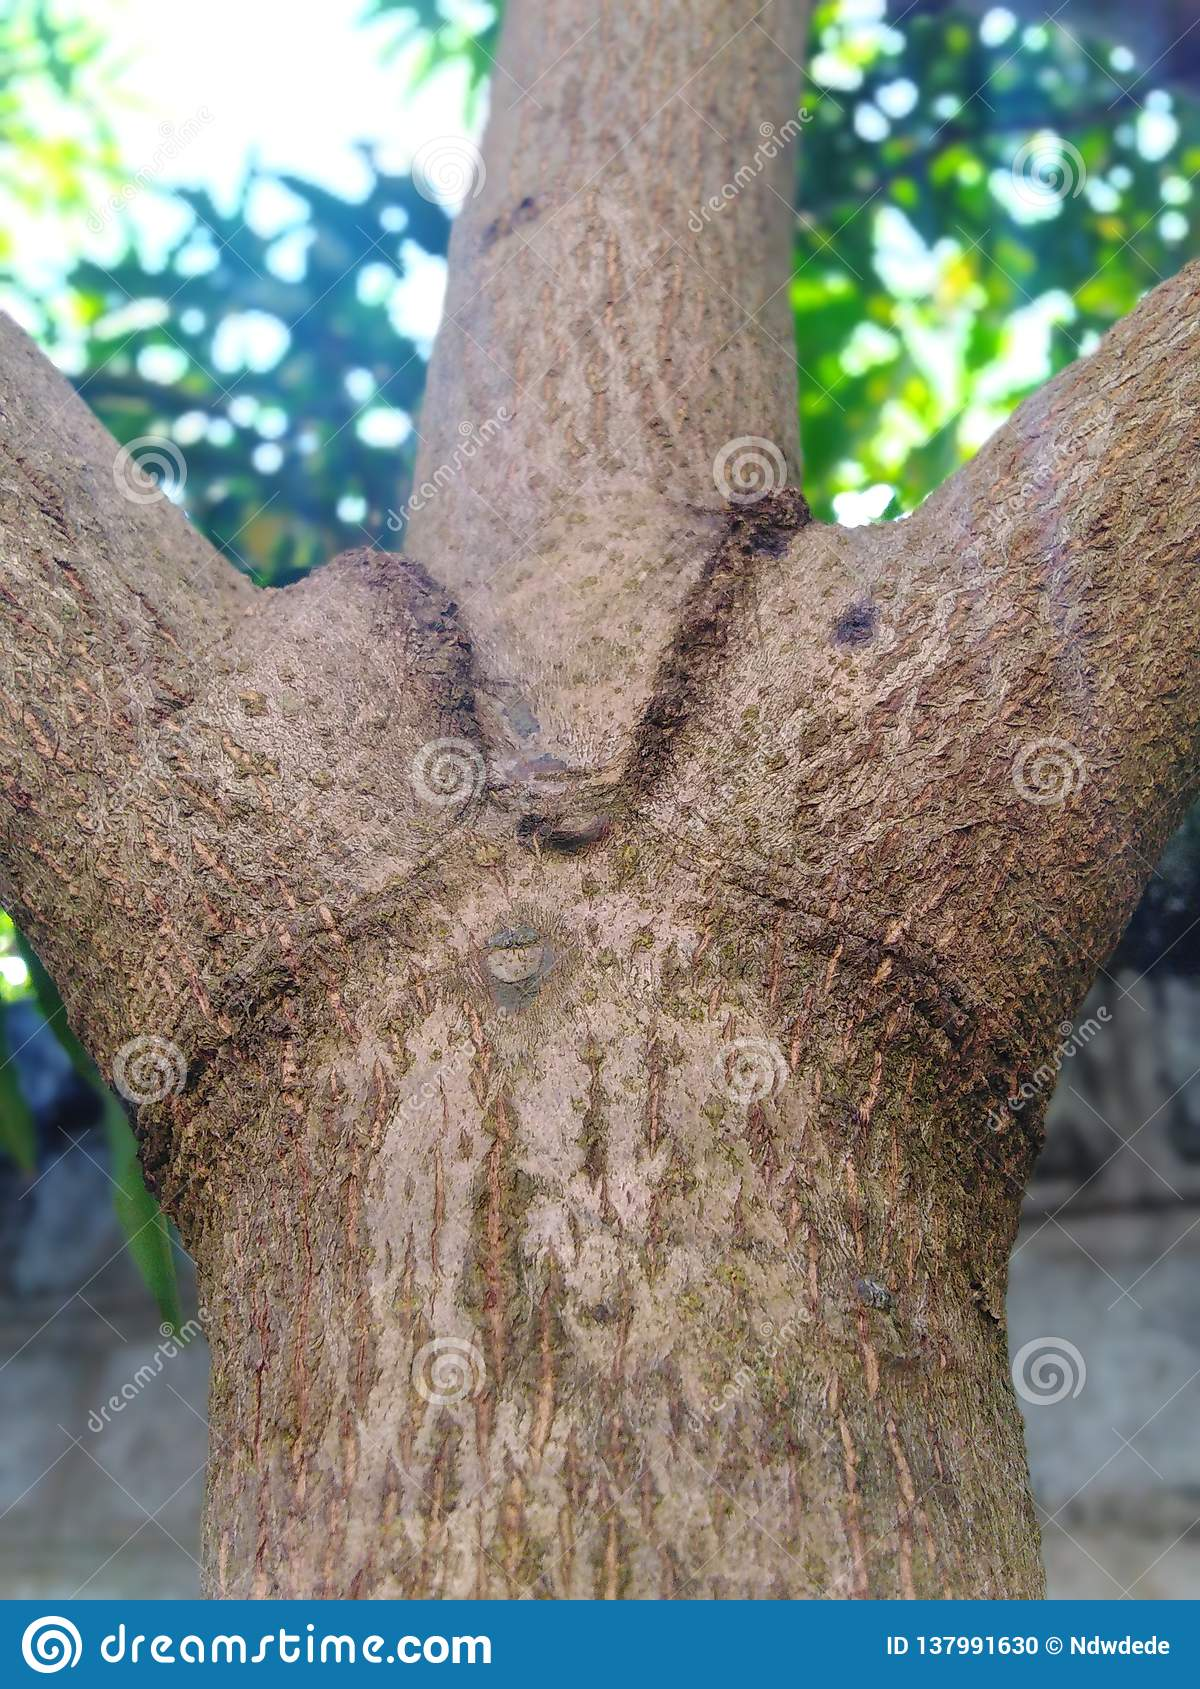 Nature tree trunk